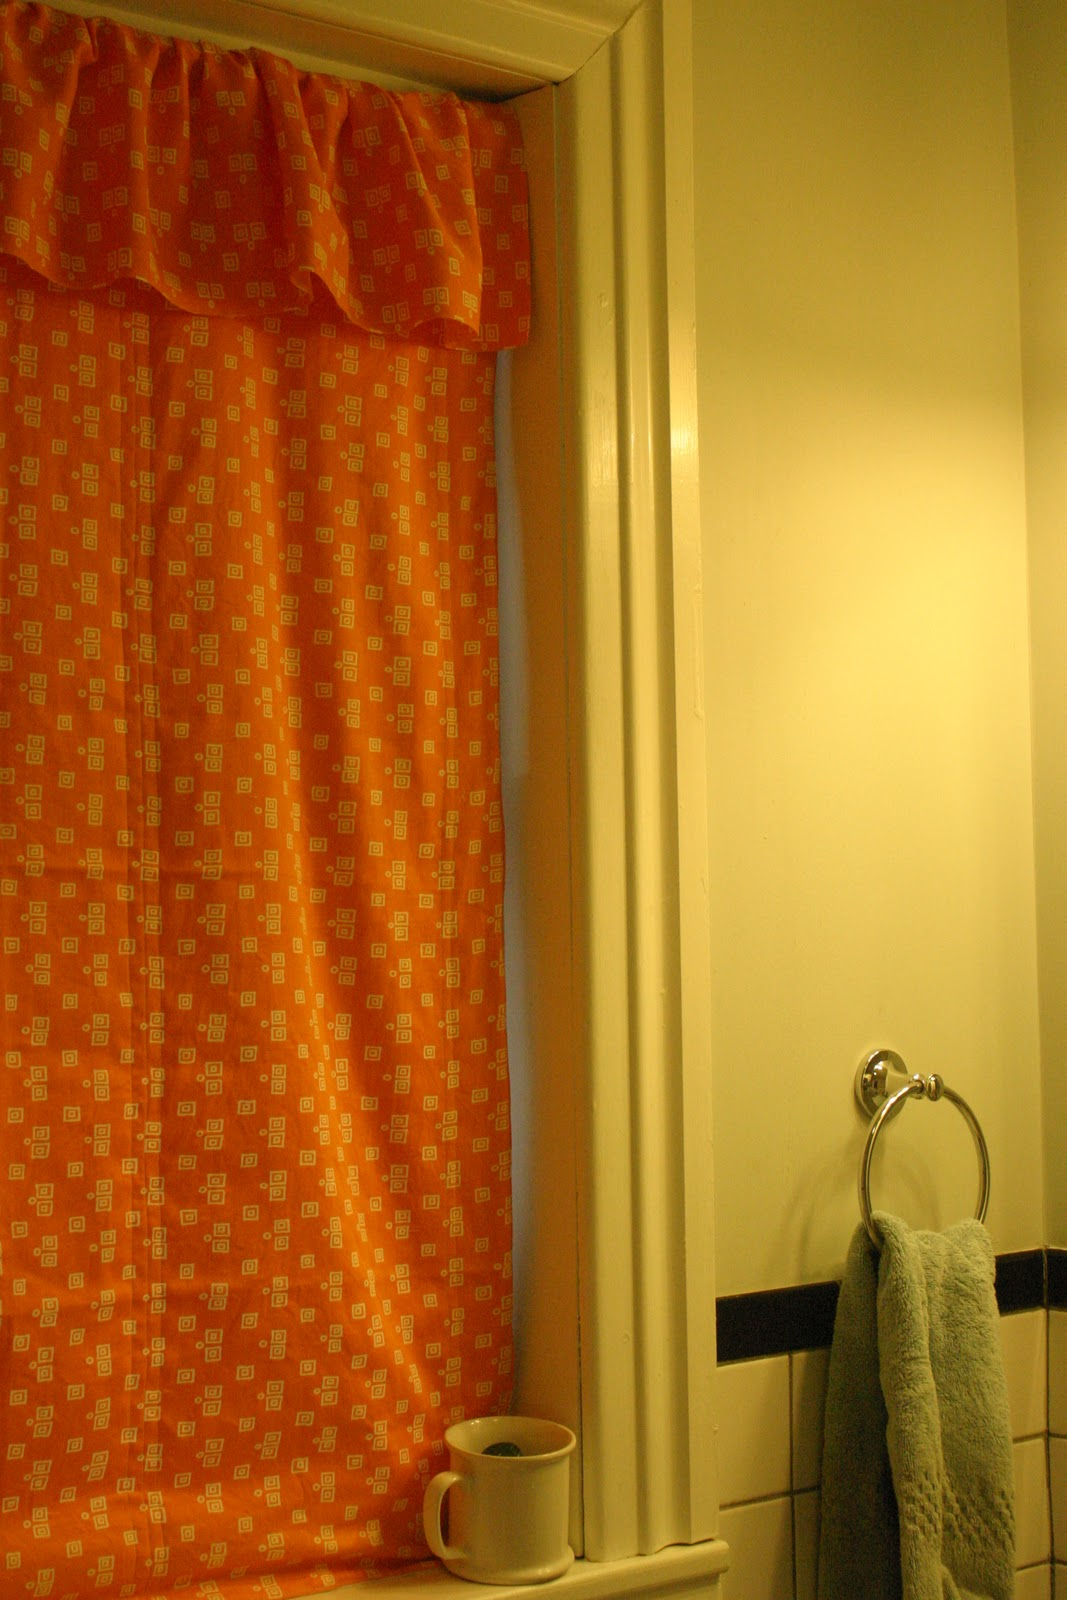 Thrift at Home: Creamsicle Curtain for the Bathroom